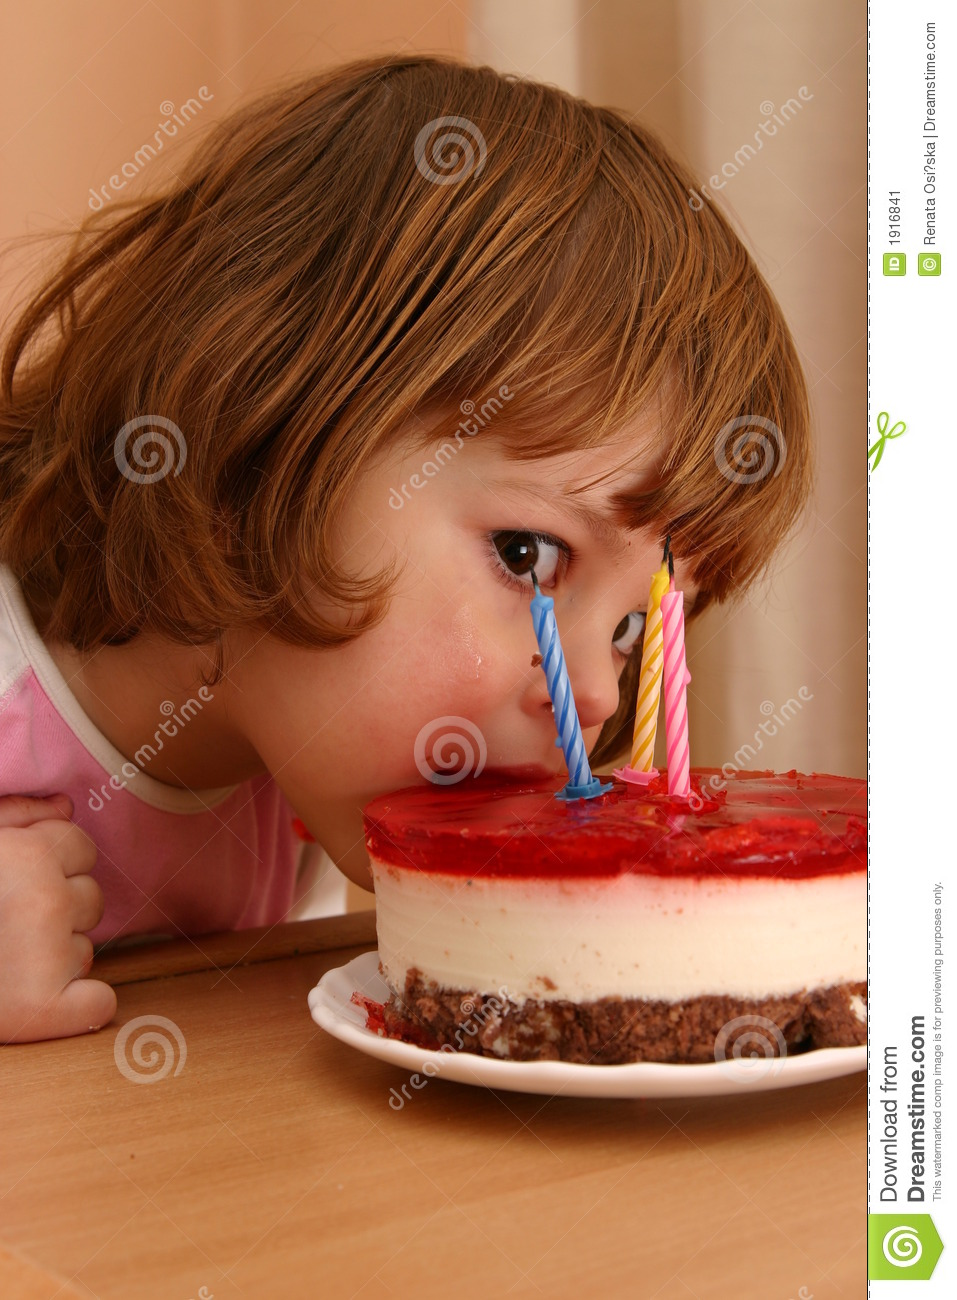 Eating my birthday cake